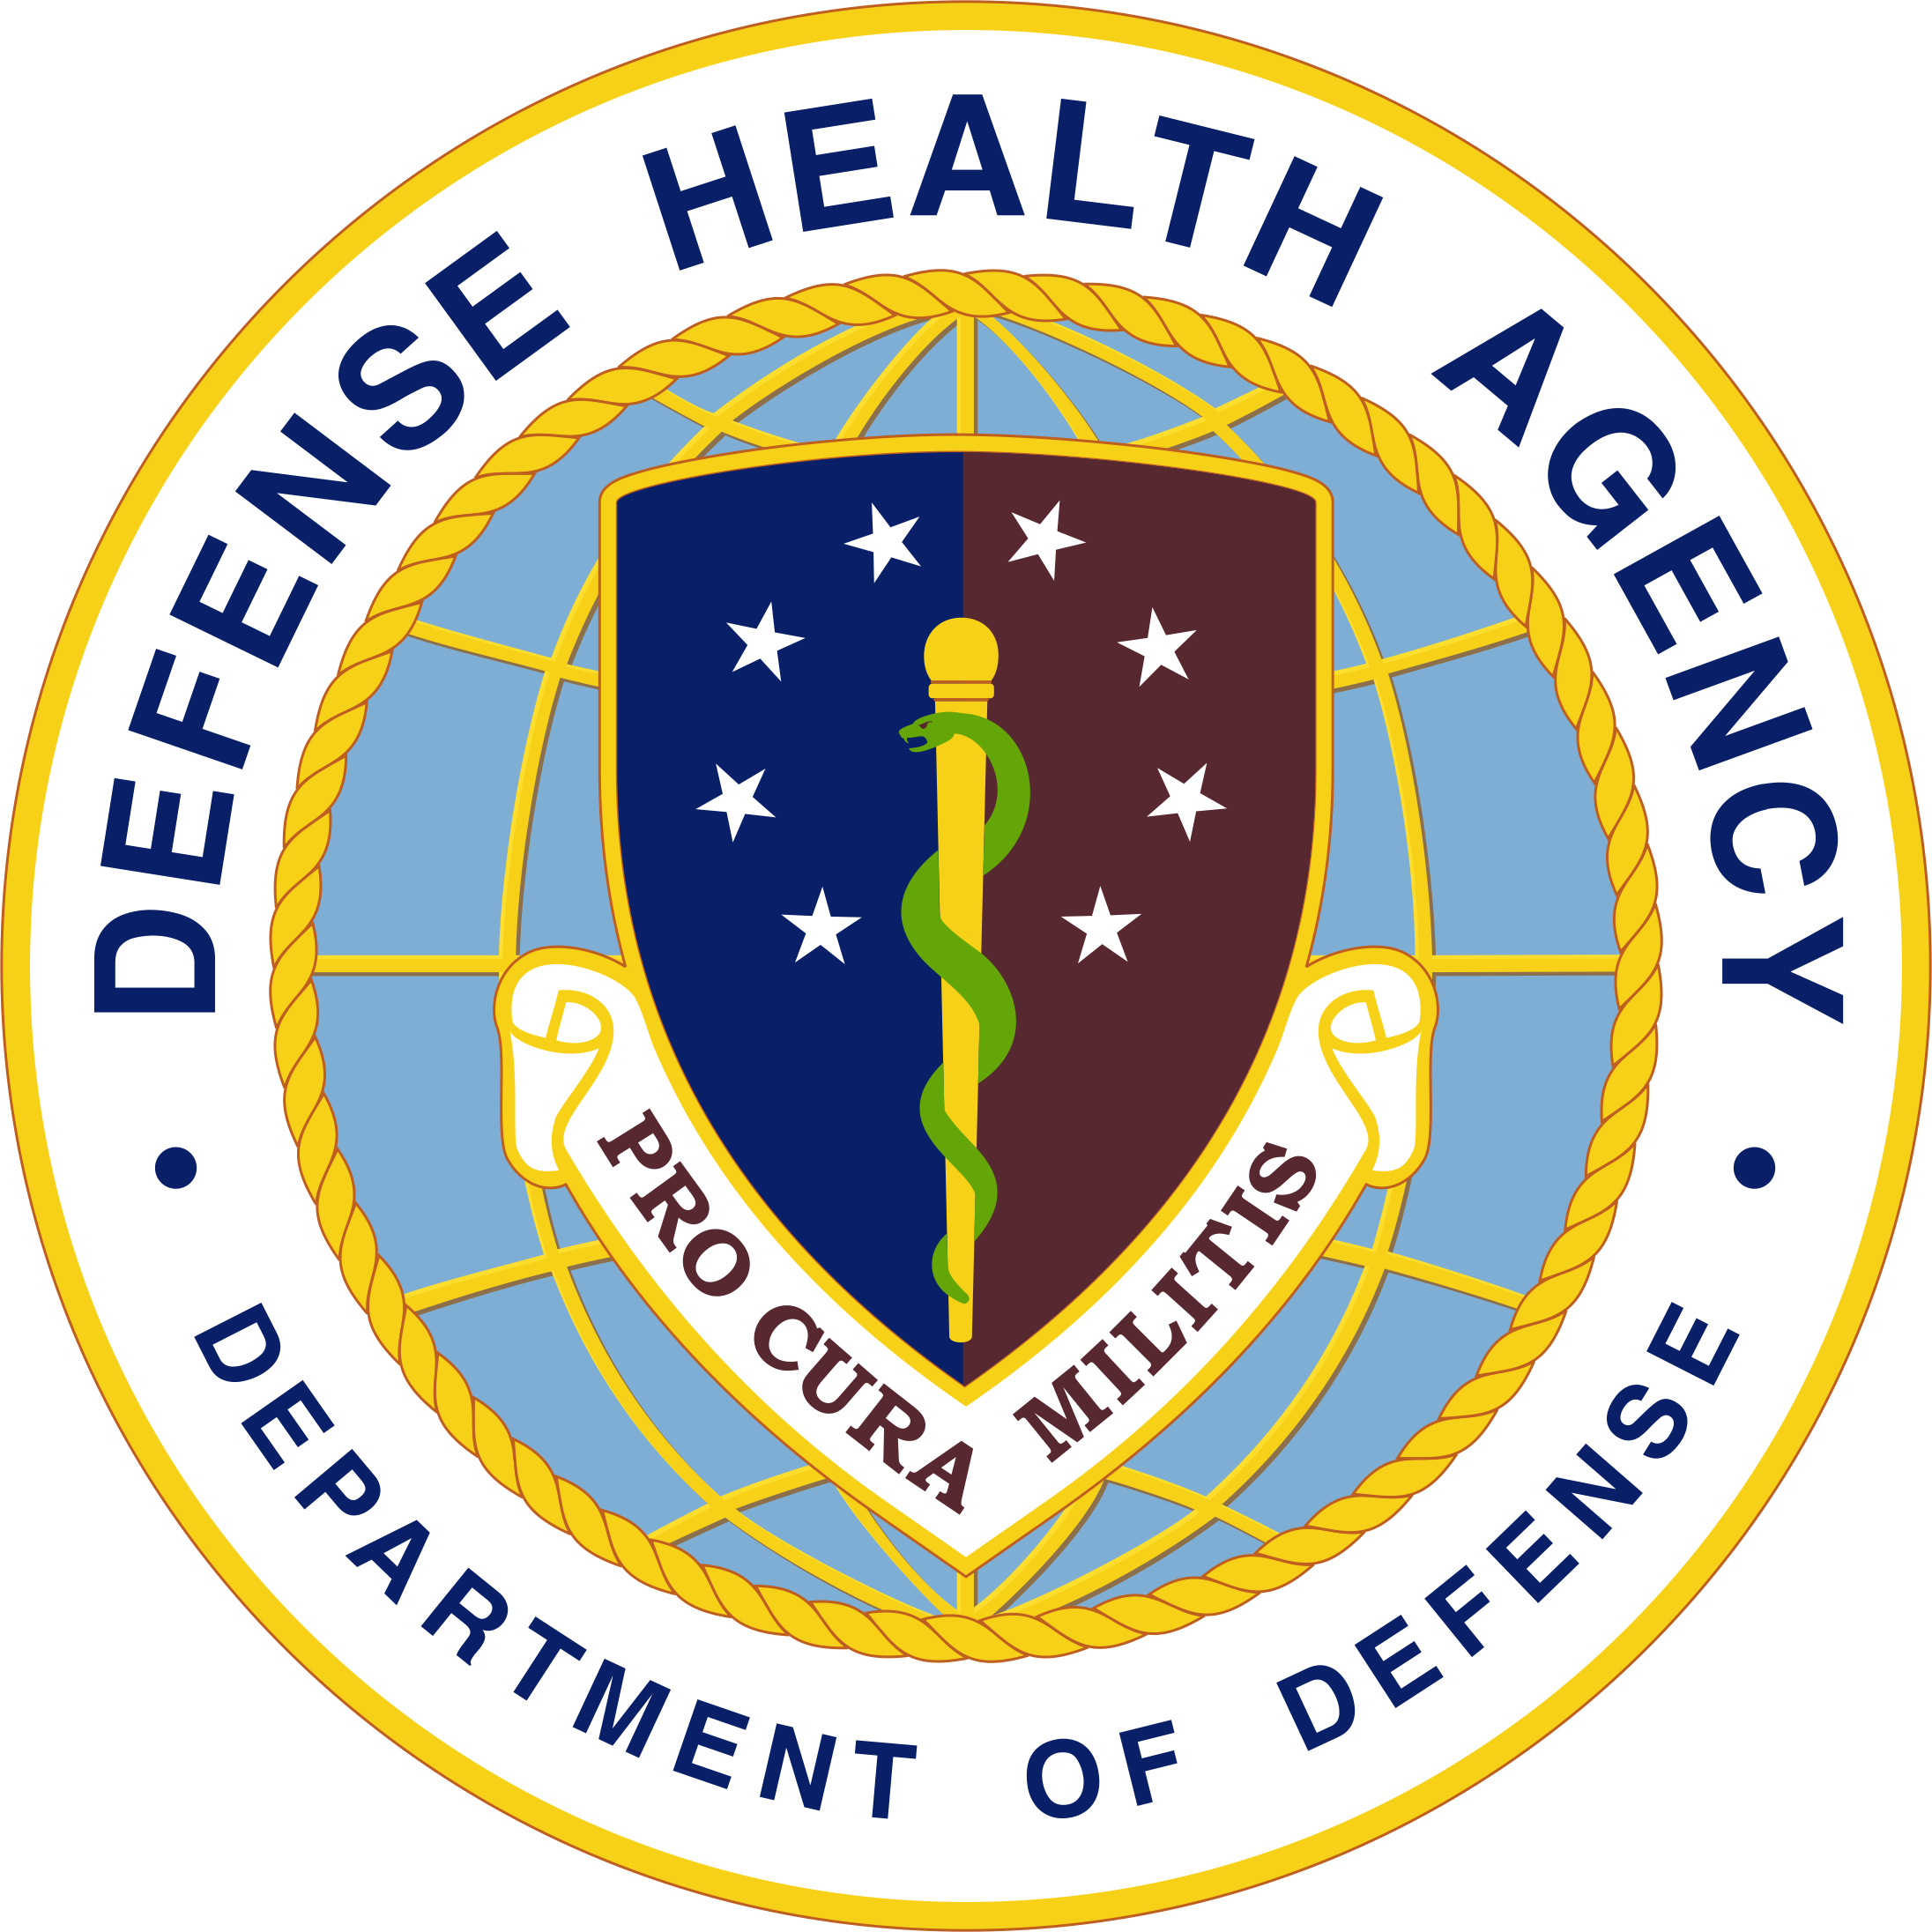 Defense Health Agency Wikipedia